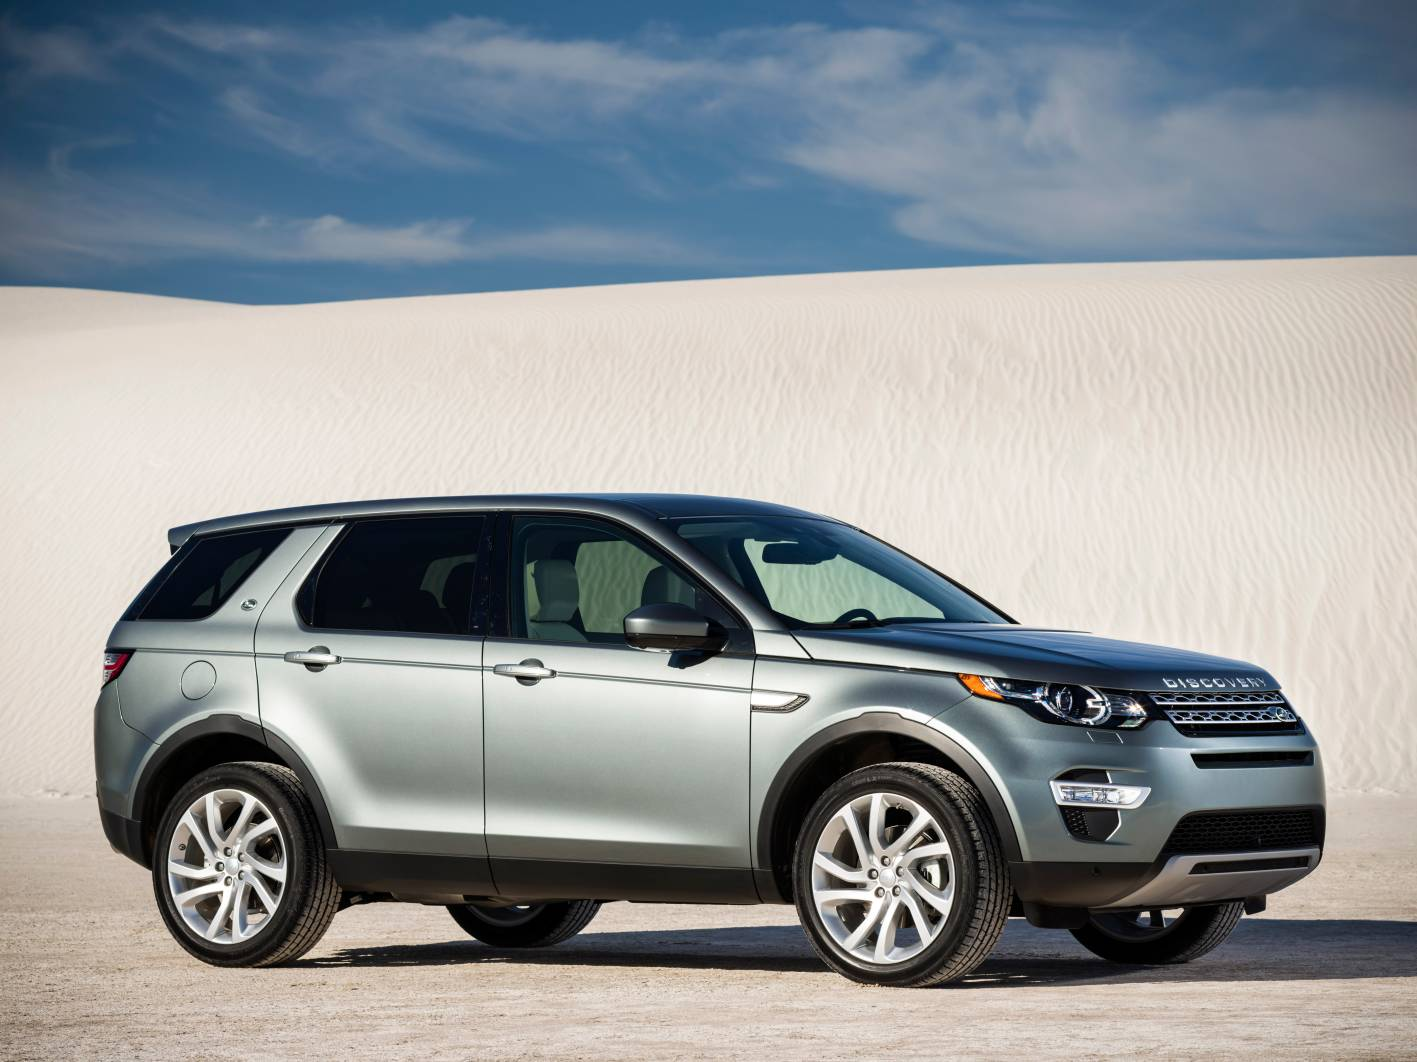 2015 land rover discovery sport pricing announced. Black Bedroom Furniture Sets. Home Design Ideas